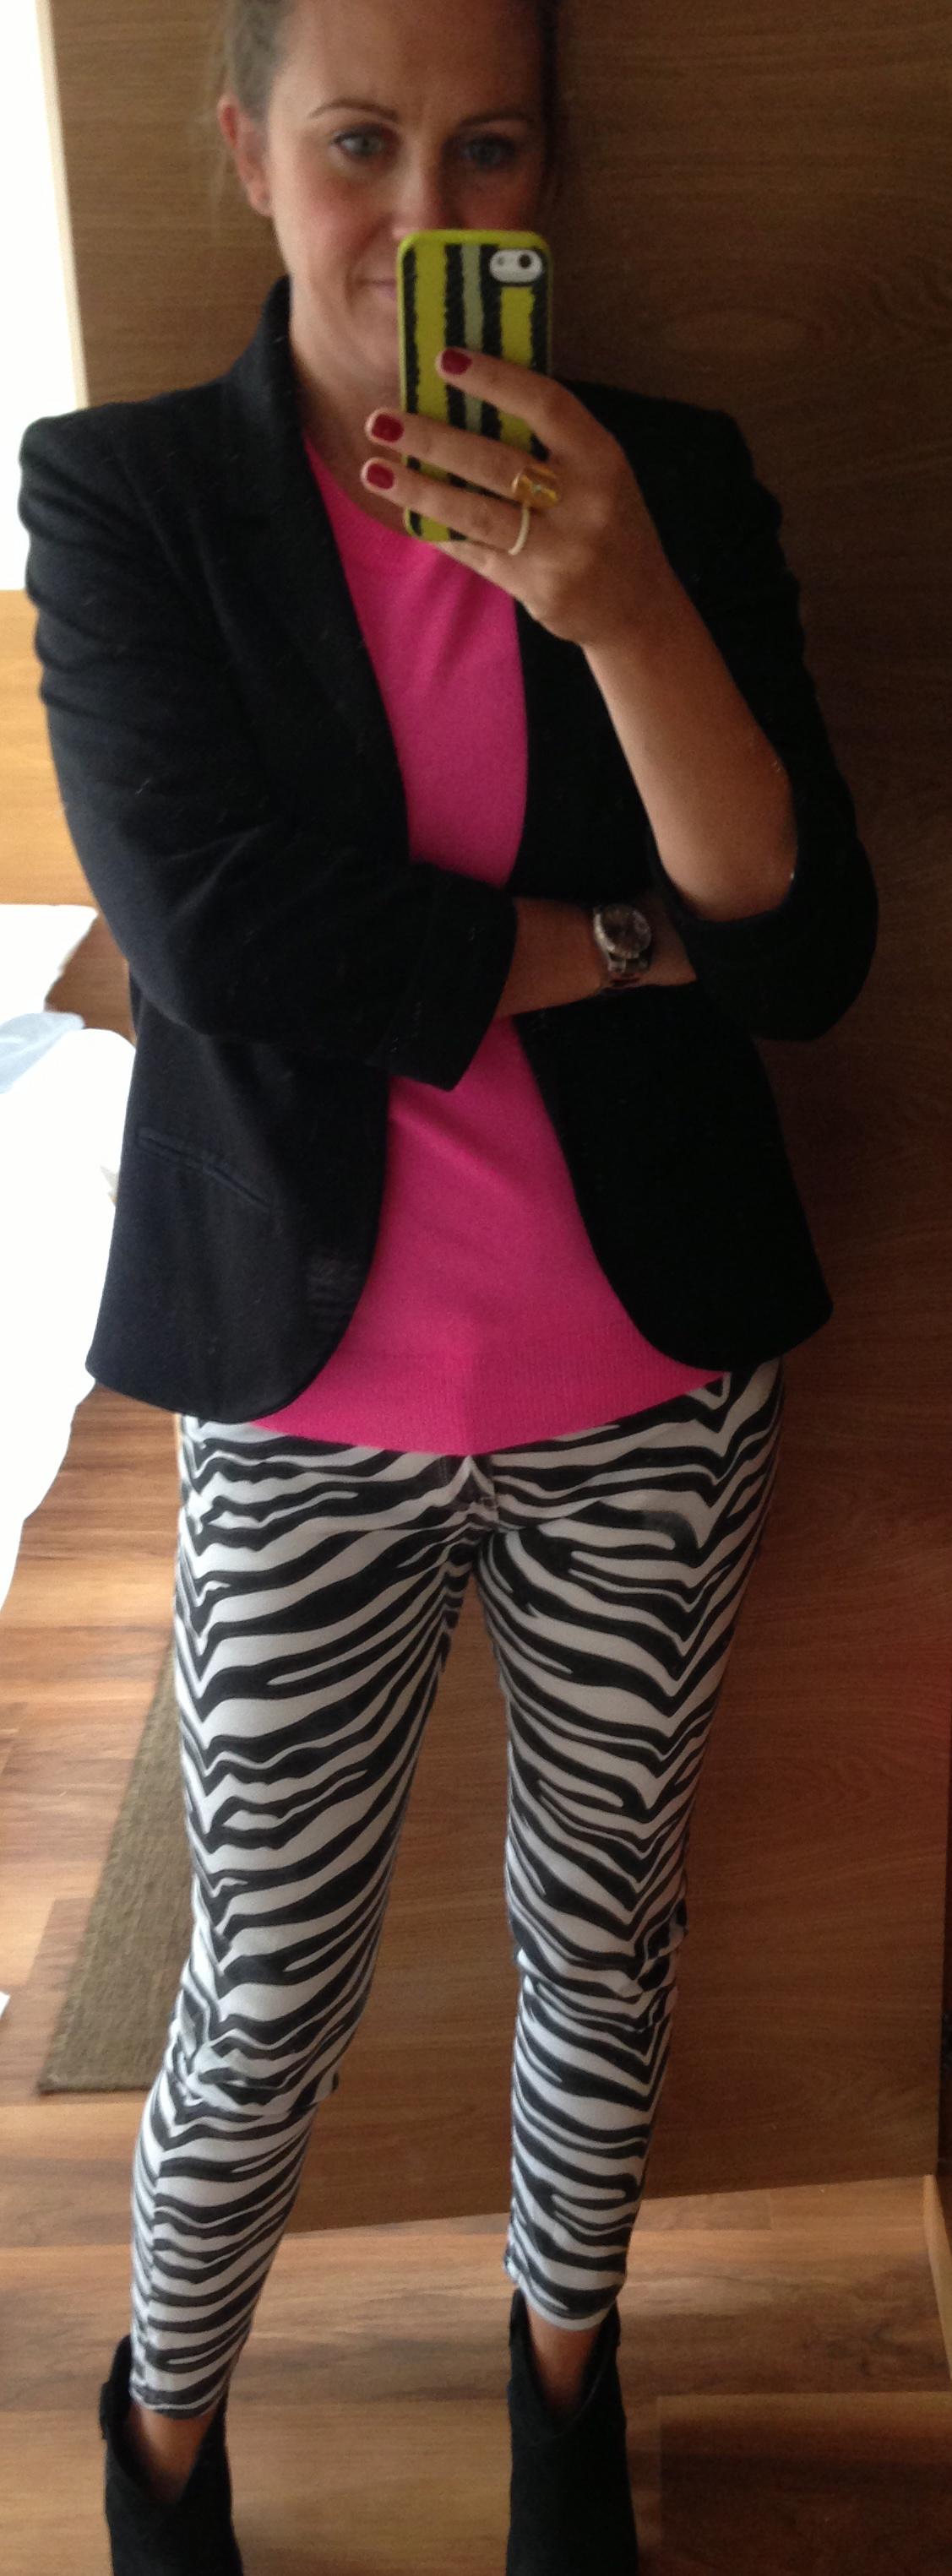 pink and zebra 2